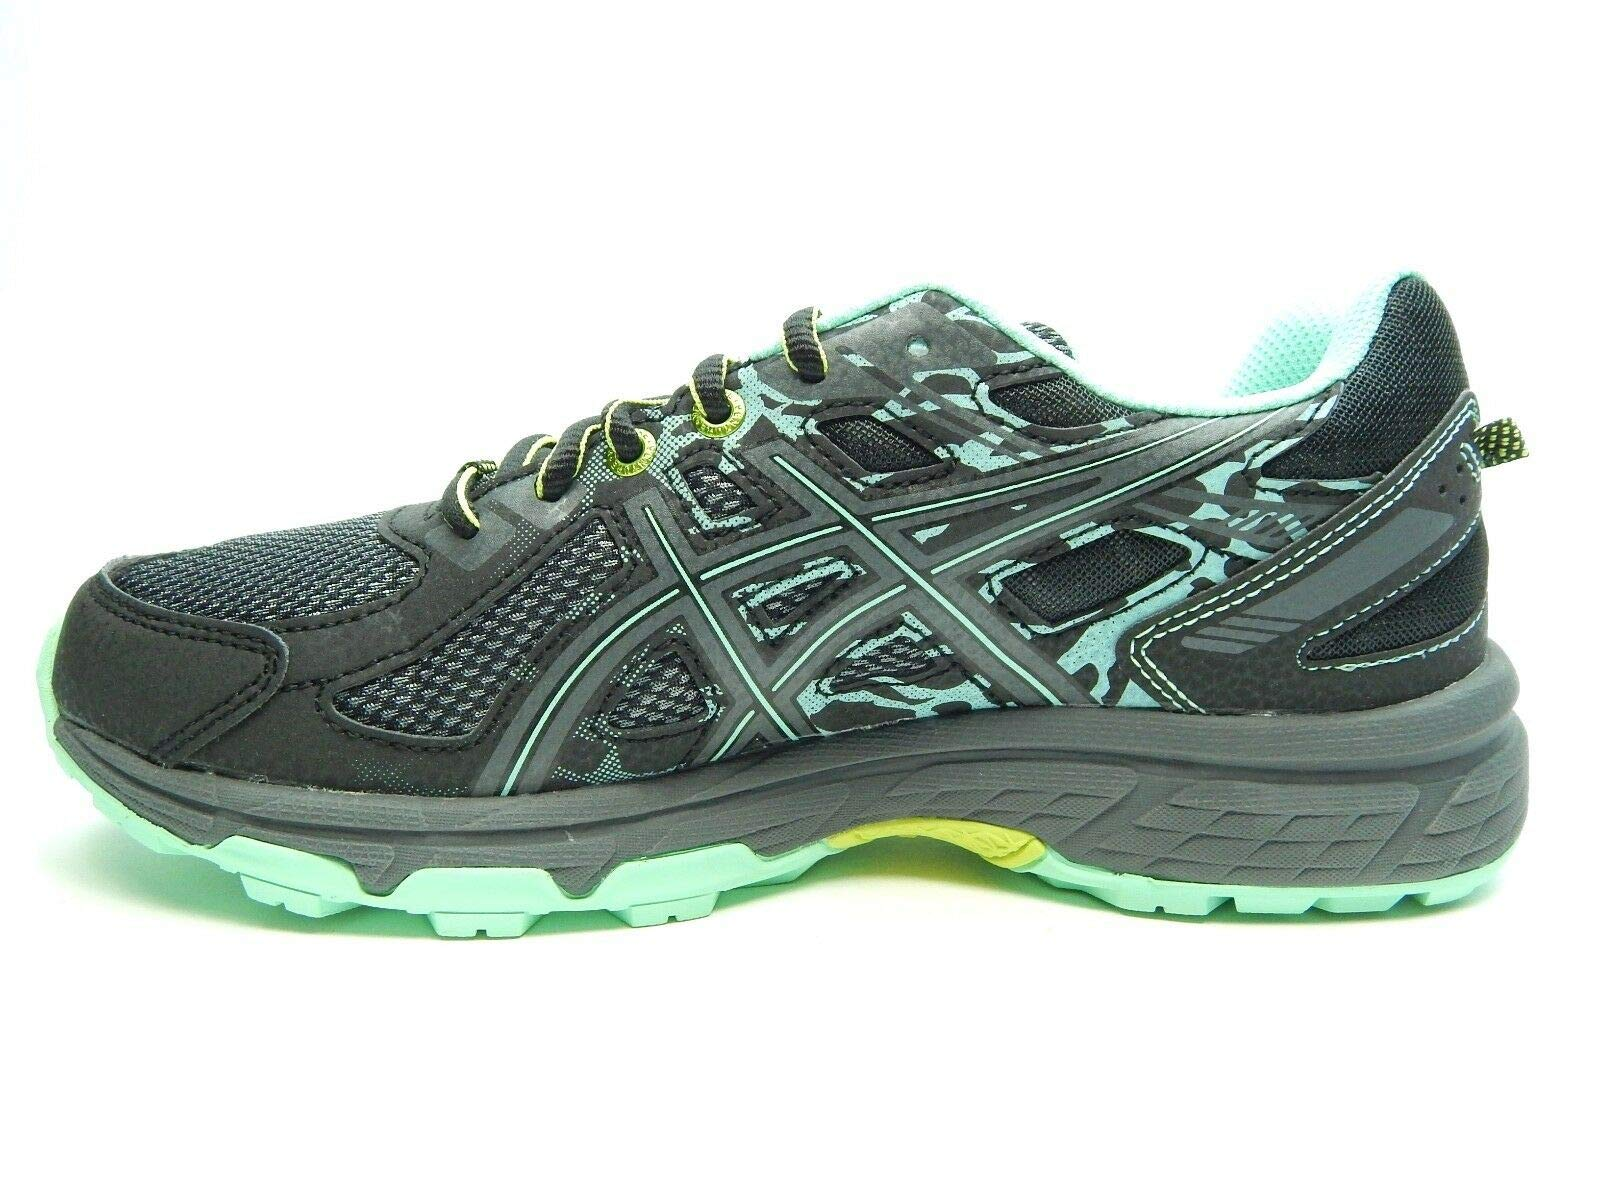 ASICS Women's Gel-Venture 6 Running-Shoes, Black/Carbon/Neon Lime, 8.5 by ASICS